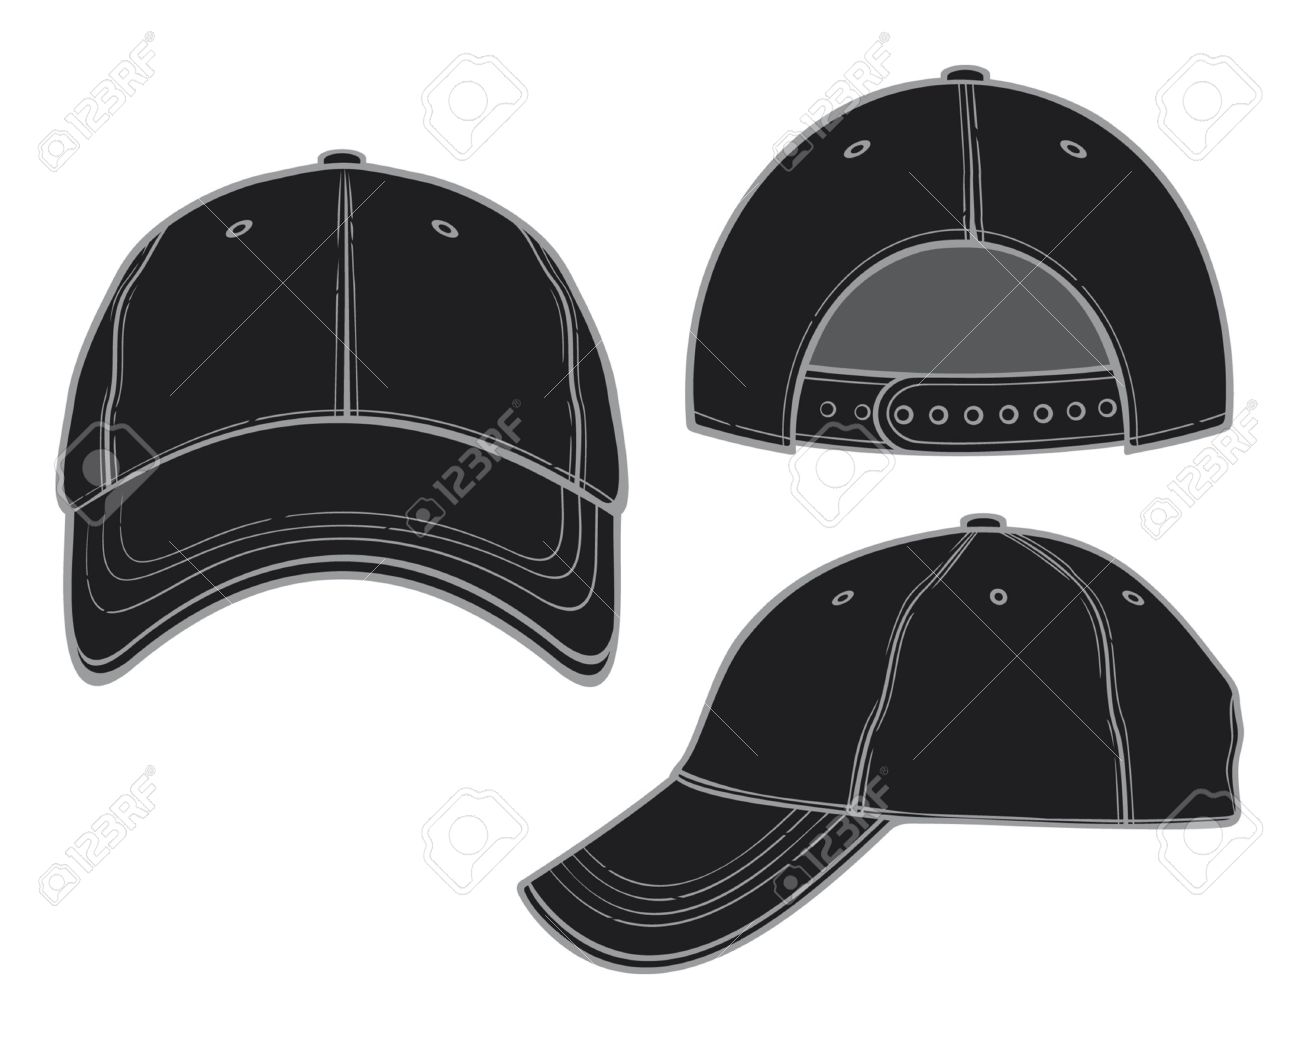 black baseball cap royalty free cliparts vectors and stock